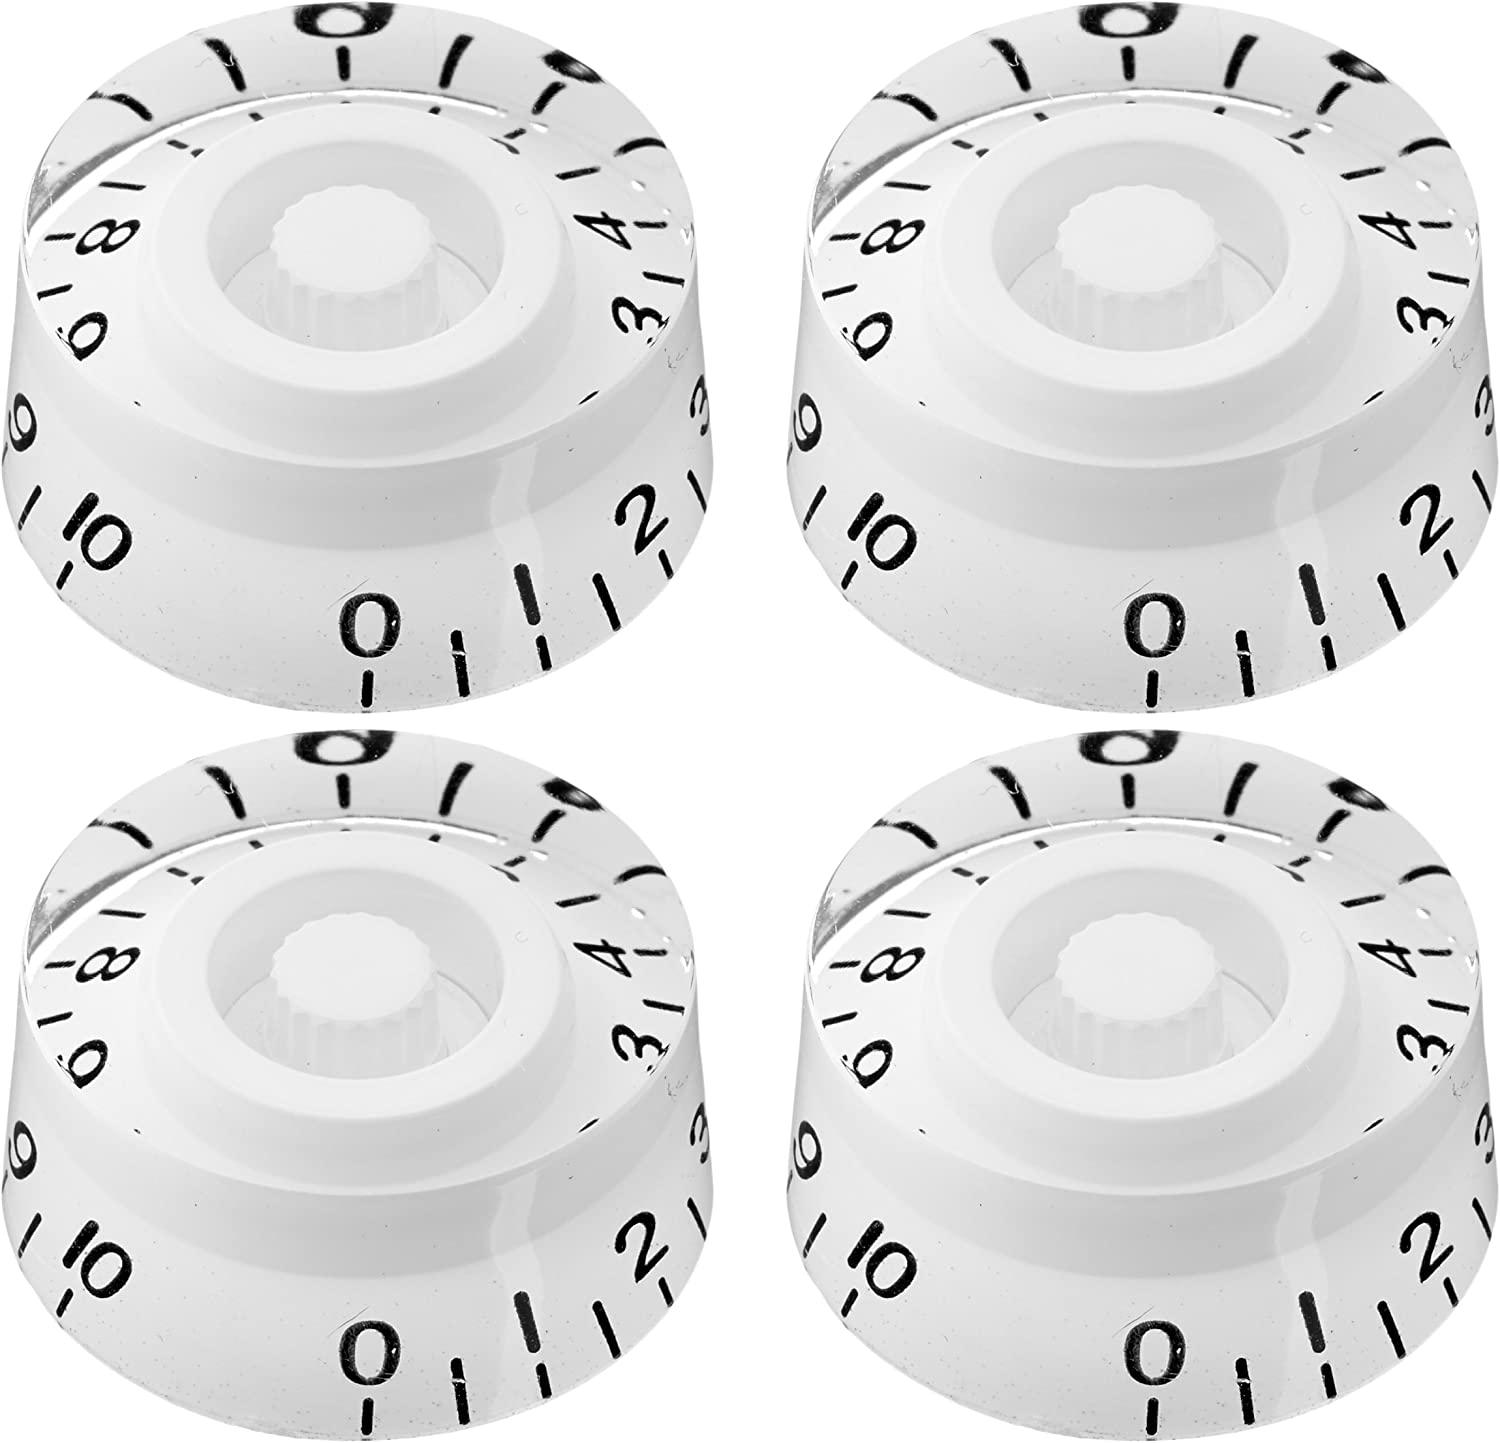 4pcs SG-335 Speed Control Knobs White for Gibson Les Paul Replacement Electric Guitar Parts